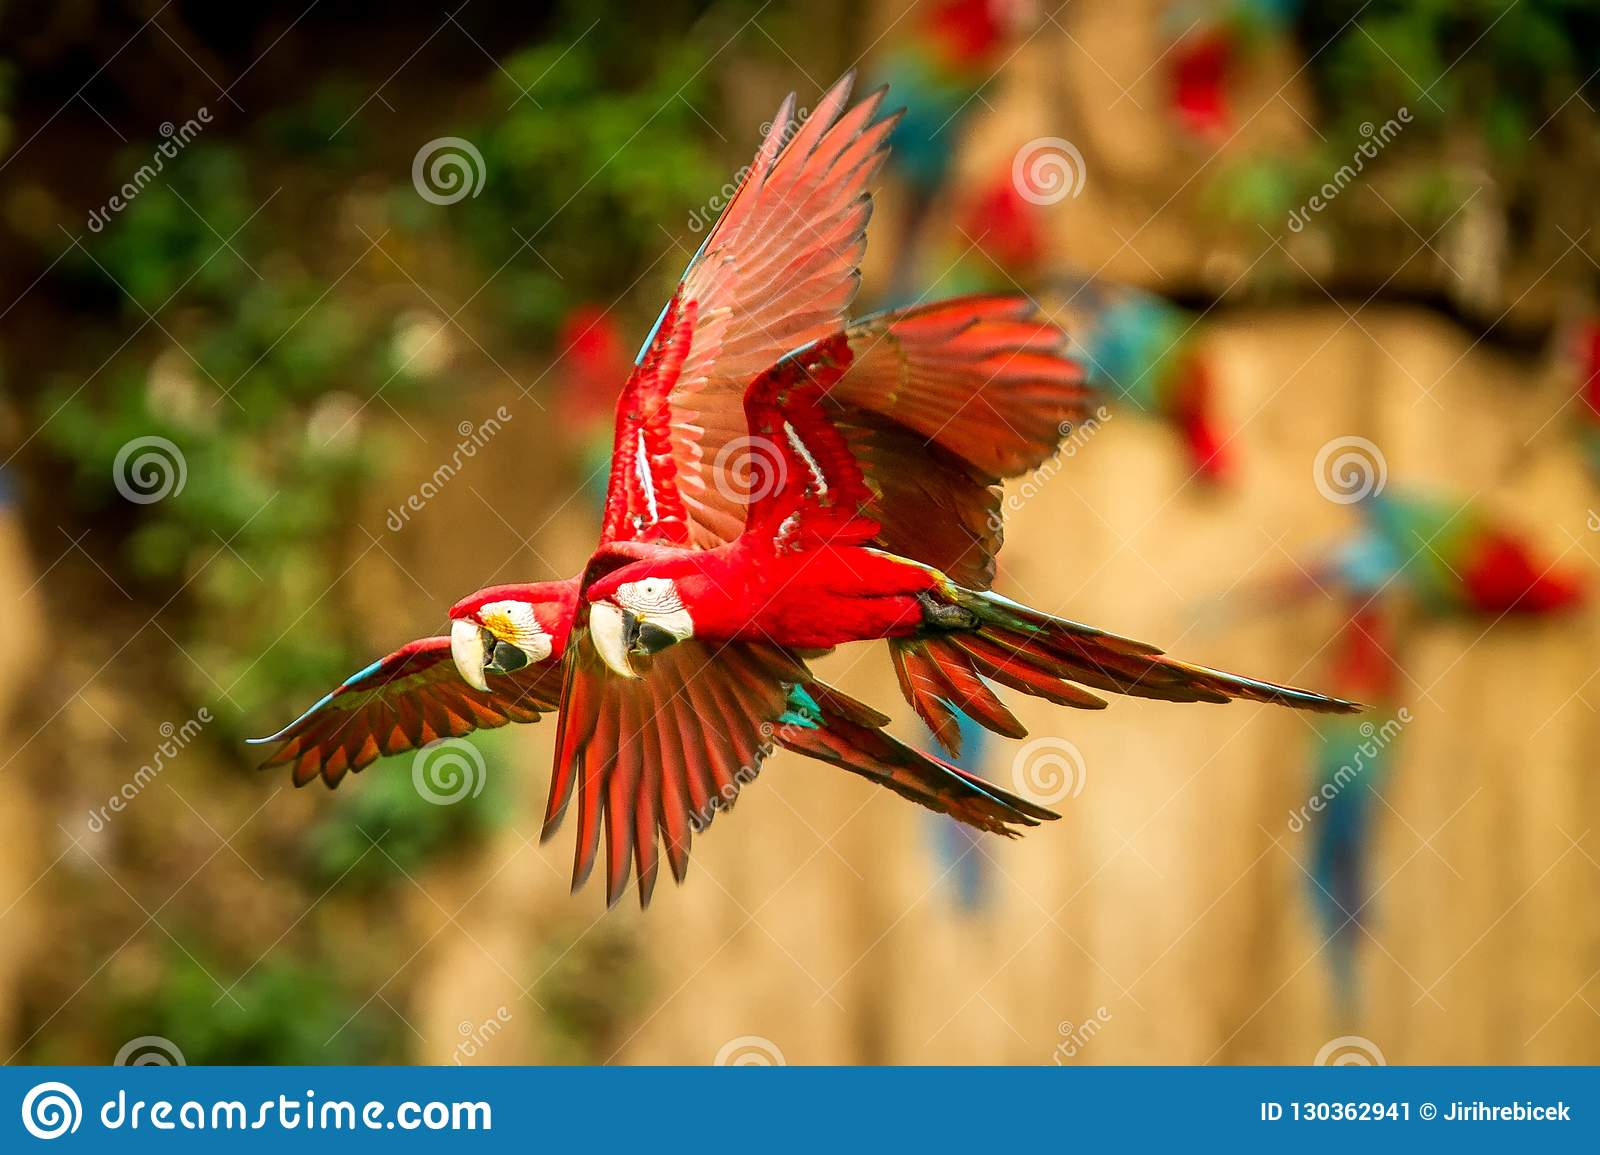 Red parrot in flight. Macaw flying, green vegetation in background. Red and green Macaw in tropical forest